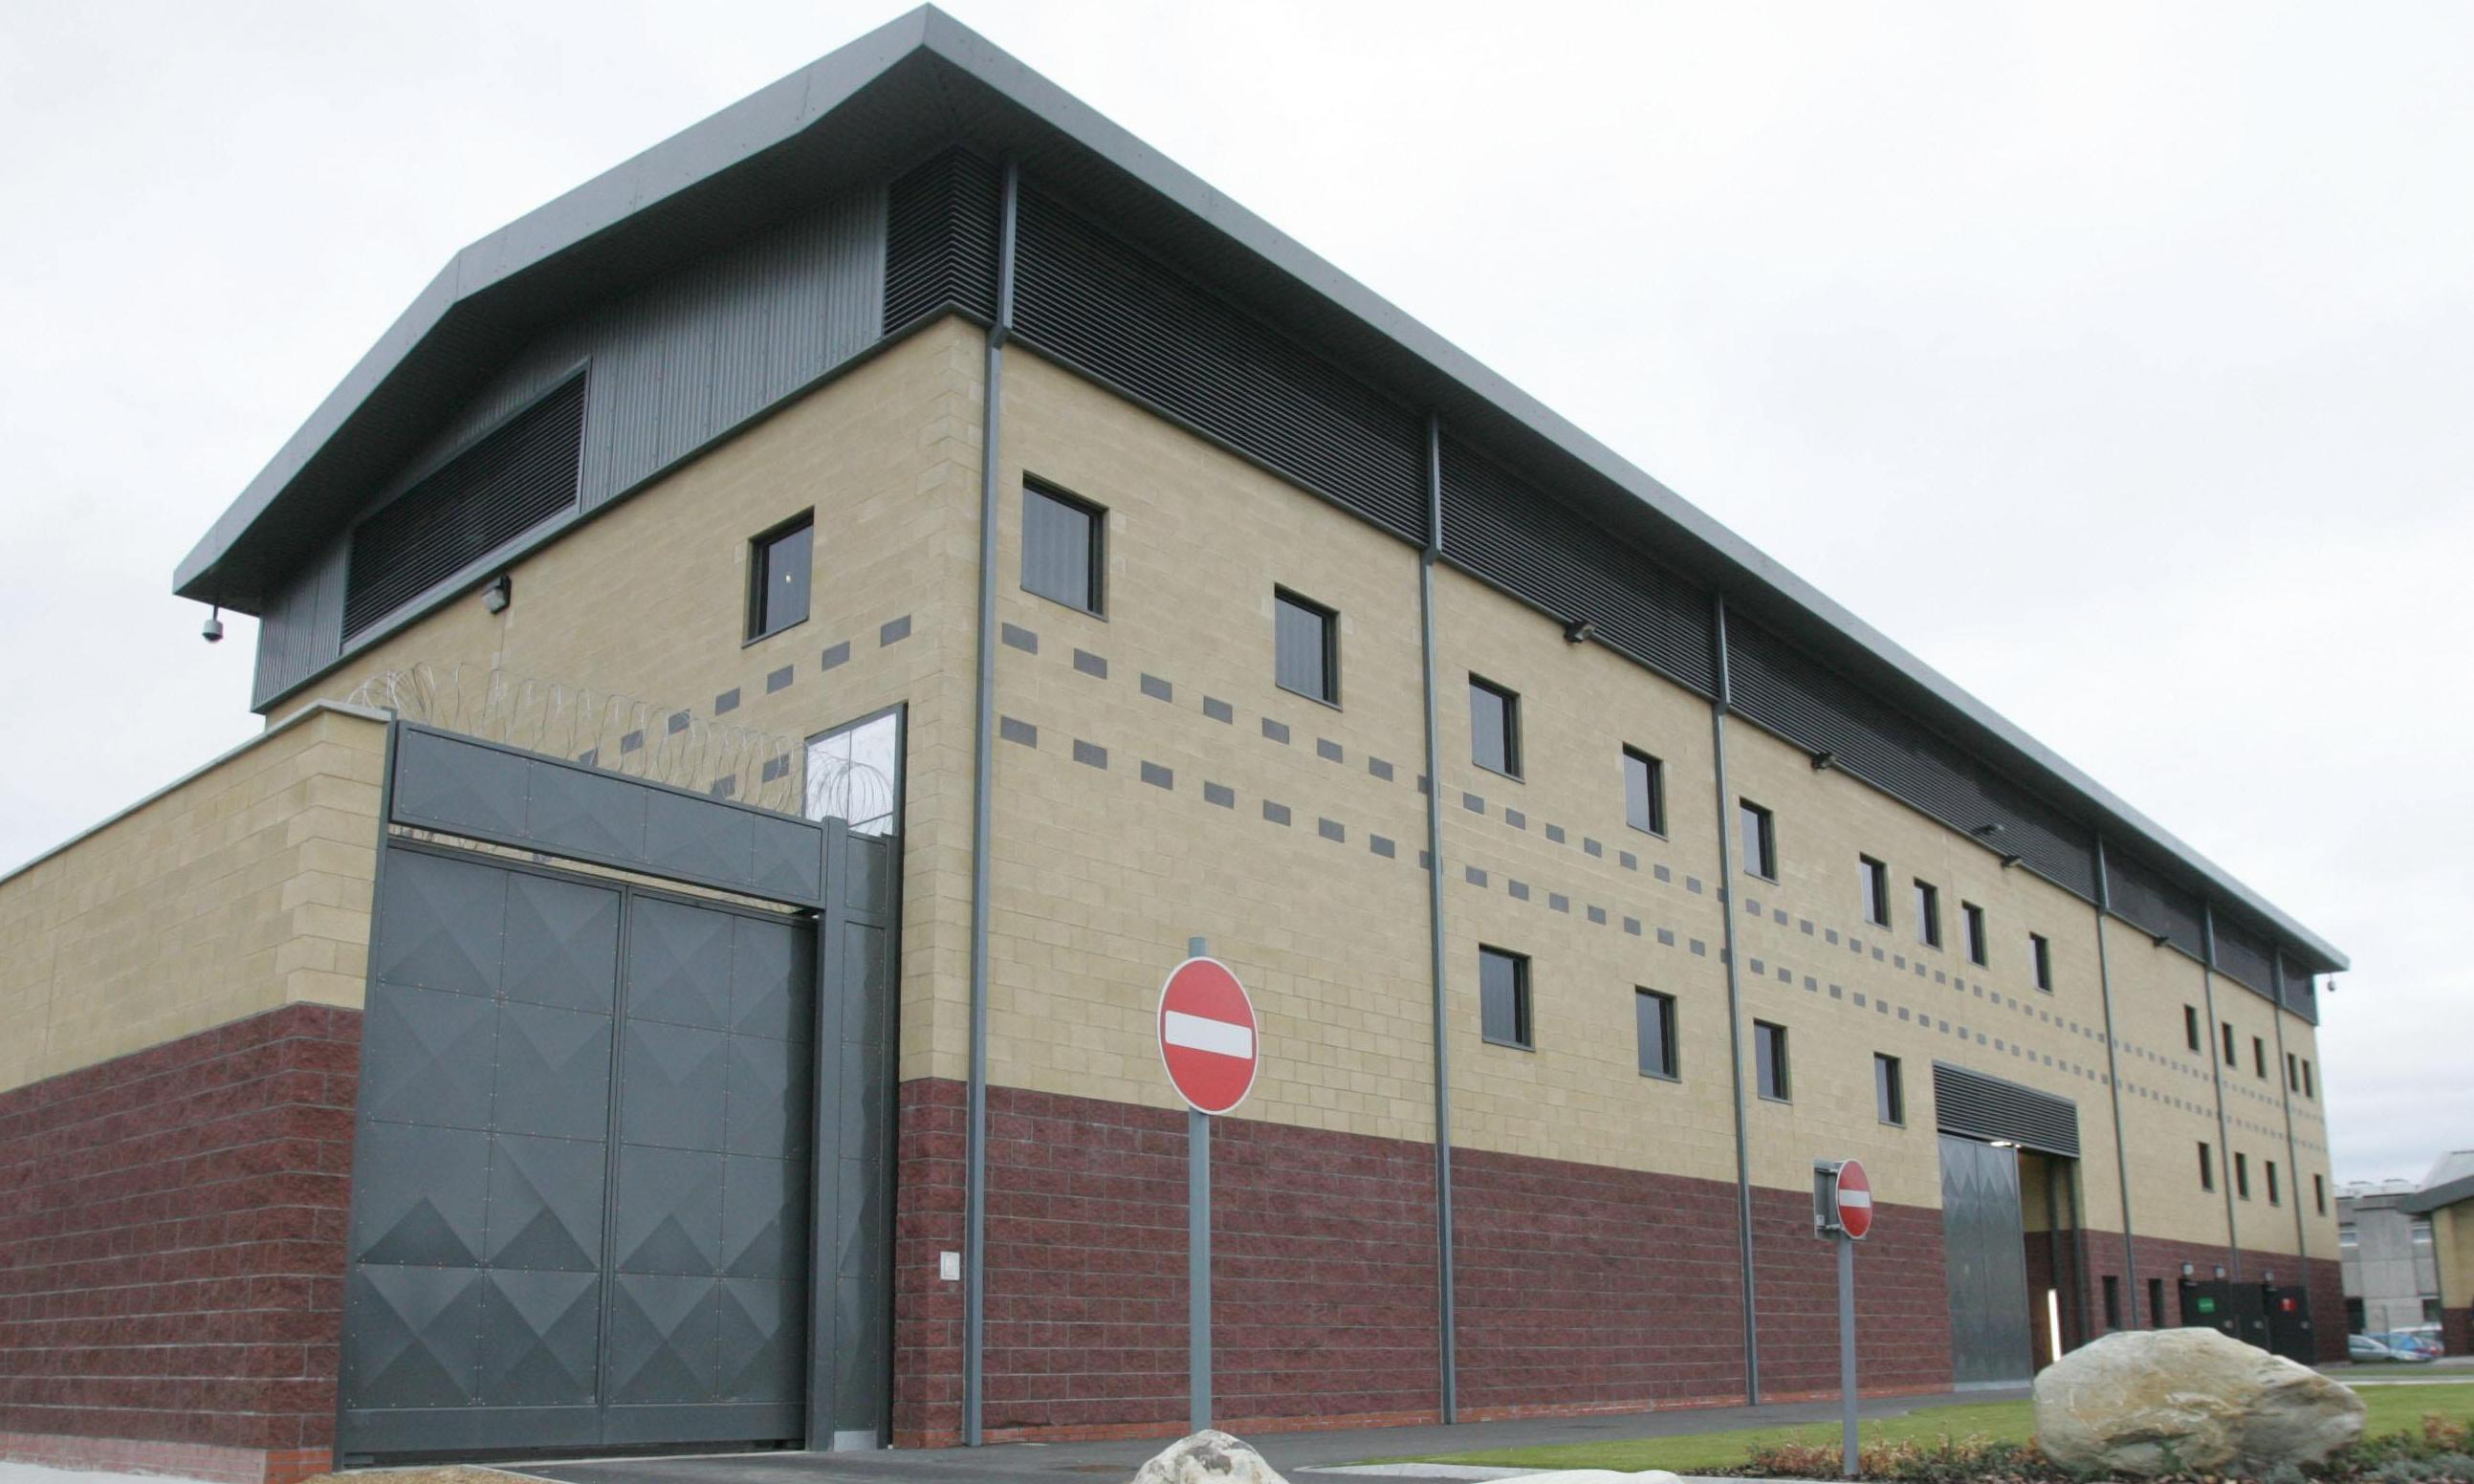 Home Office has utterly failed in immigration detention, MPs find